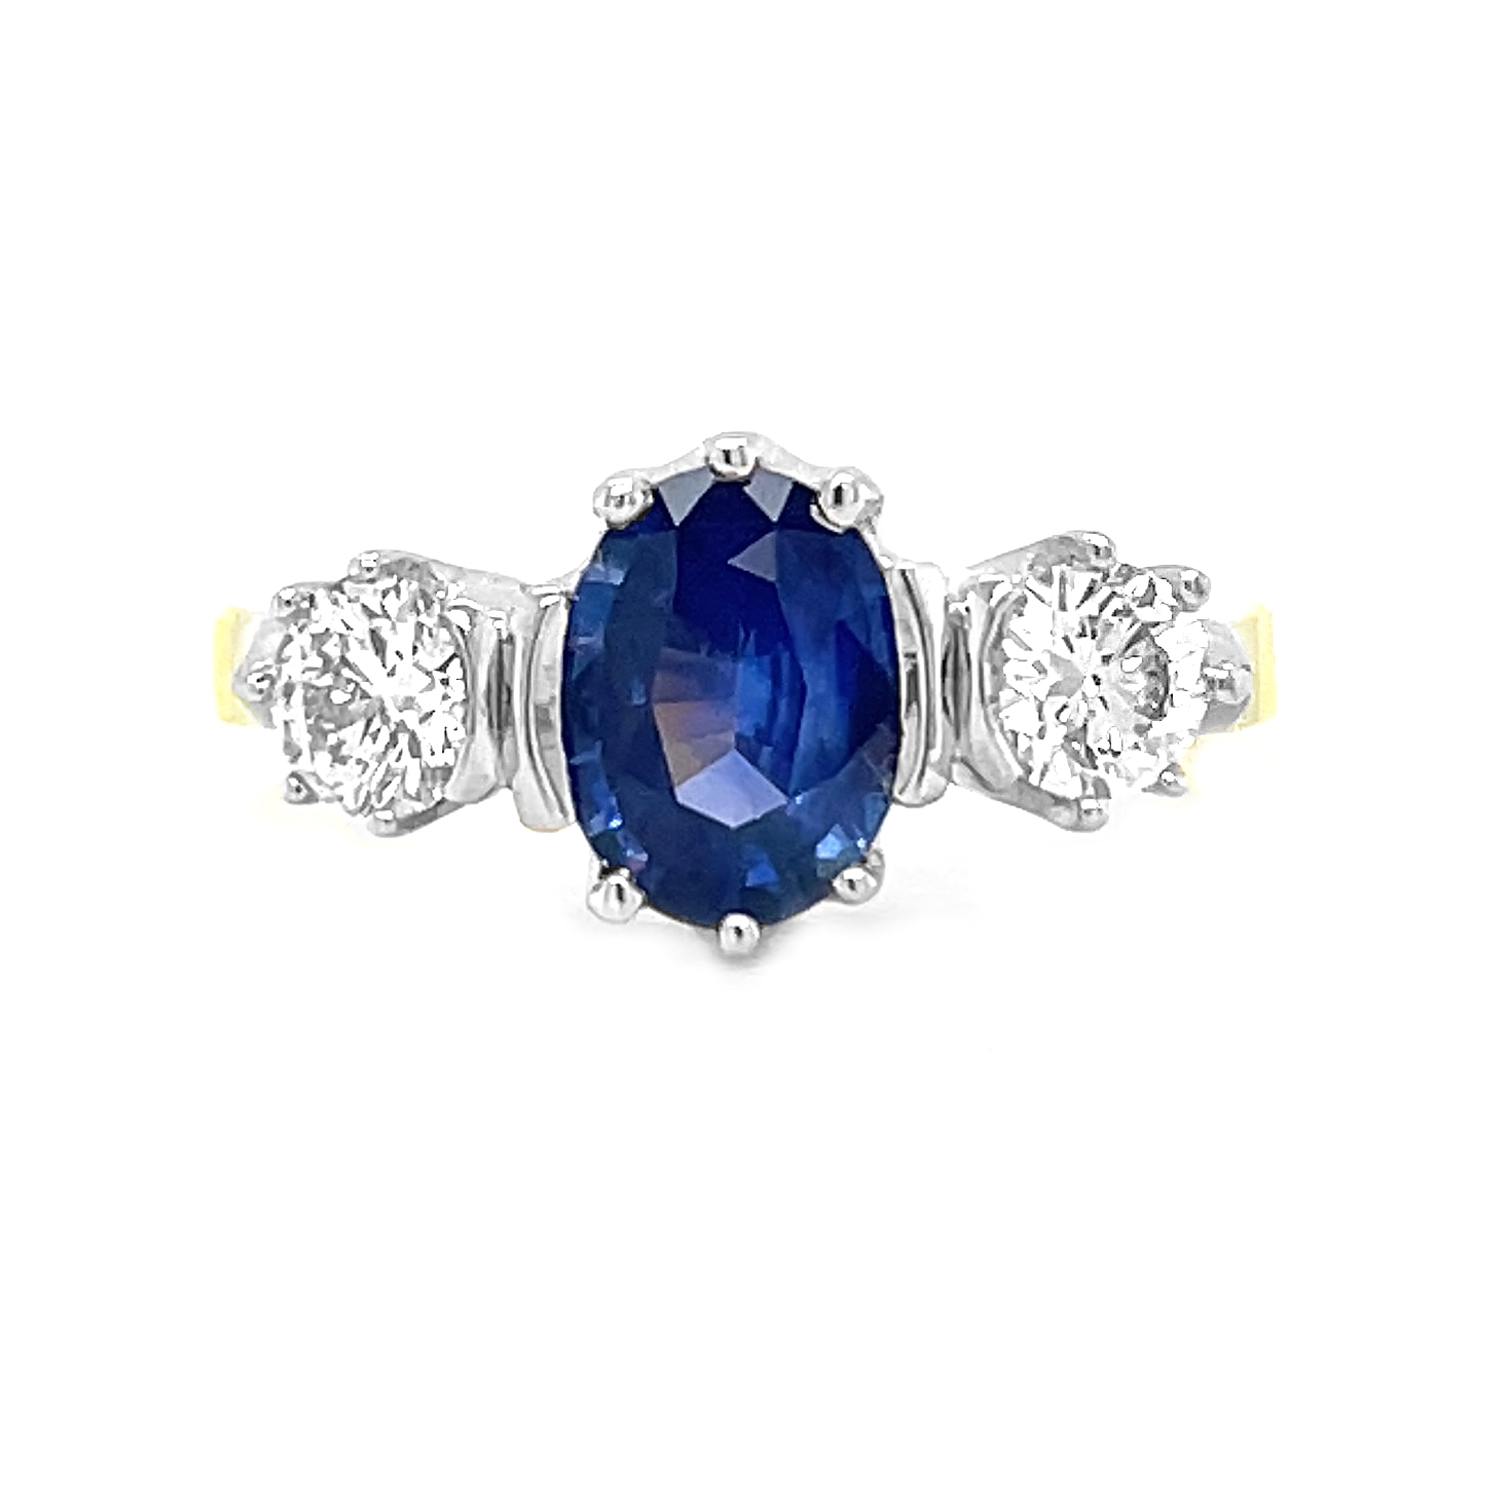 18k Yellow And White Gold 3 Stone Oval Sapphire & Brilliant Cut Diamond Ring